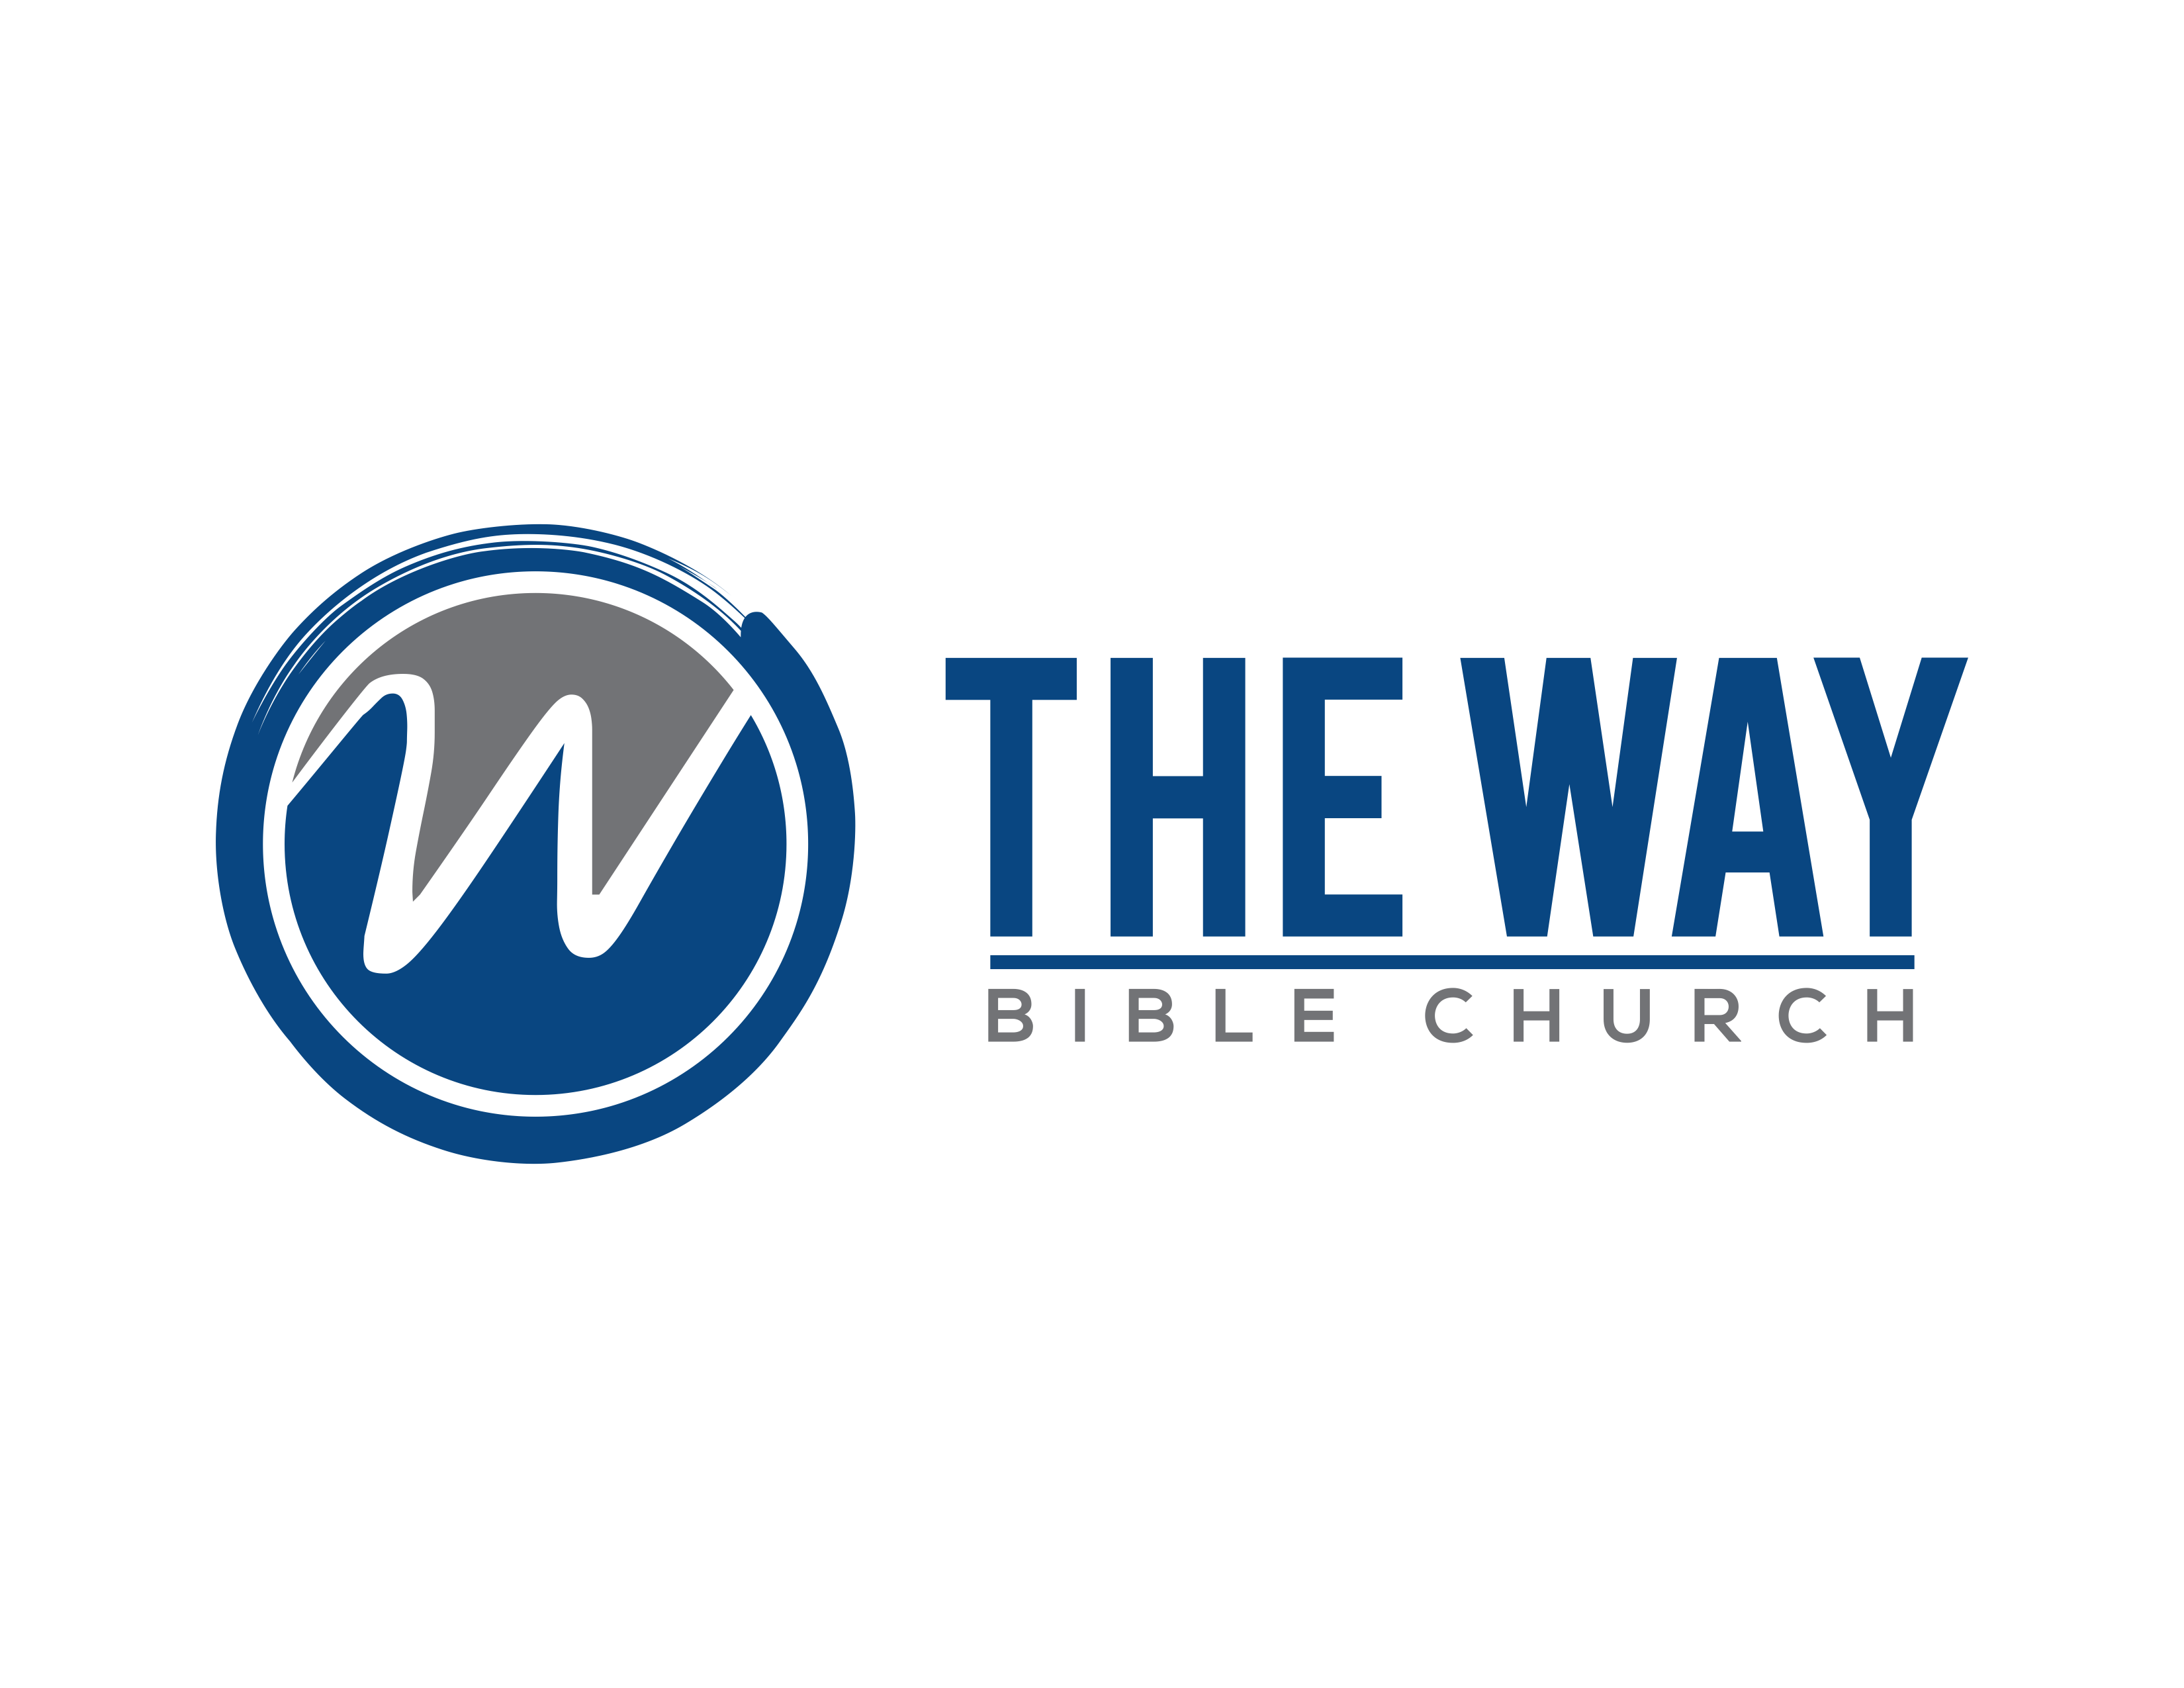 The Way Bible Church